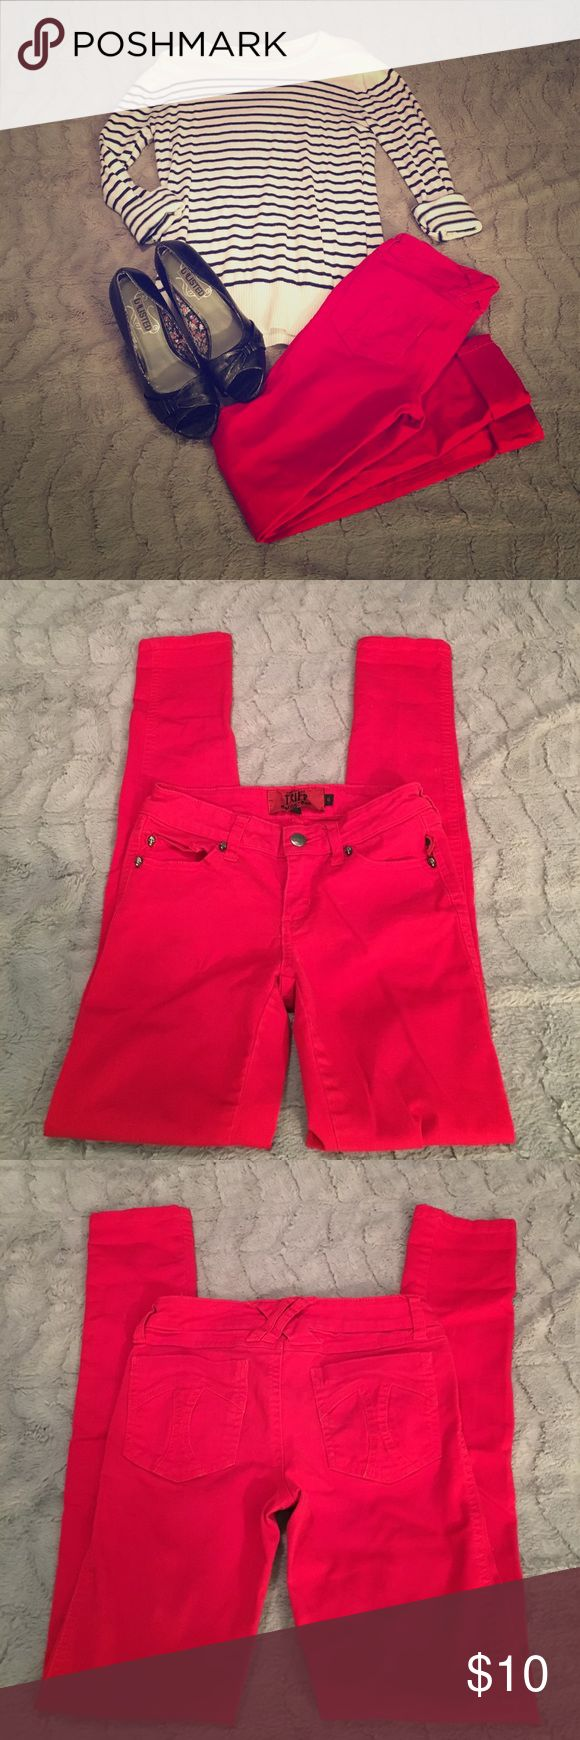 Tripp, Lipstick Red, Skinny Pants Cute Red skinny pants by Tripp. The look great rolled at the hem with a pair of wedges. In great condition except for a small spot on the right thigh that the fabric looks wrinkled. Tripp nyc Pants Skinny